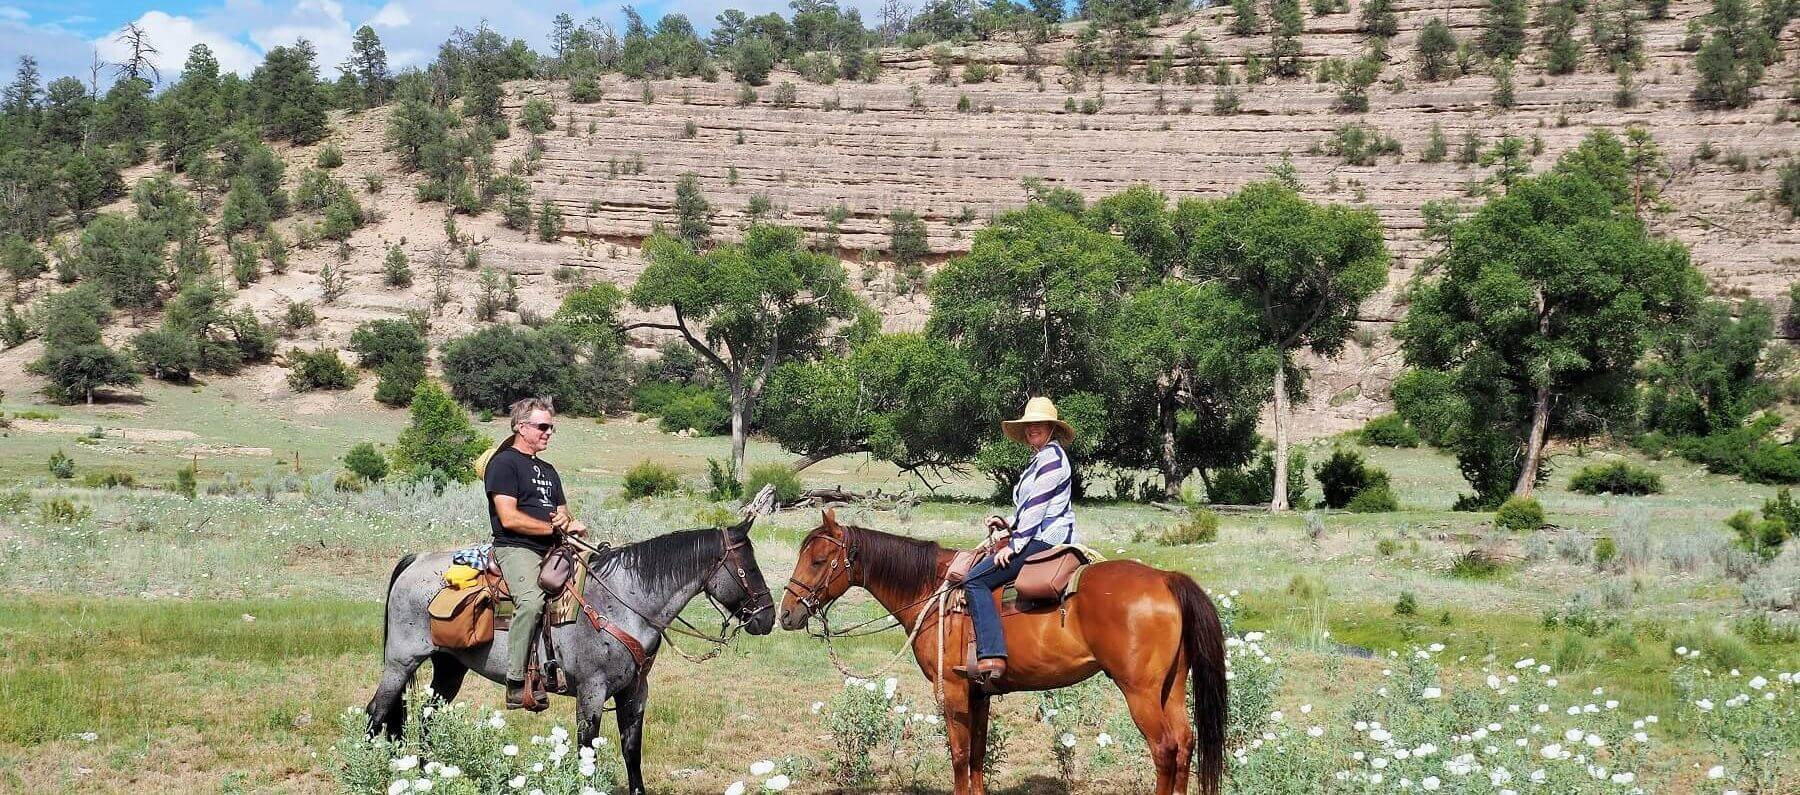 2 horses and people on Geronimo Ranch